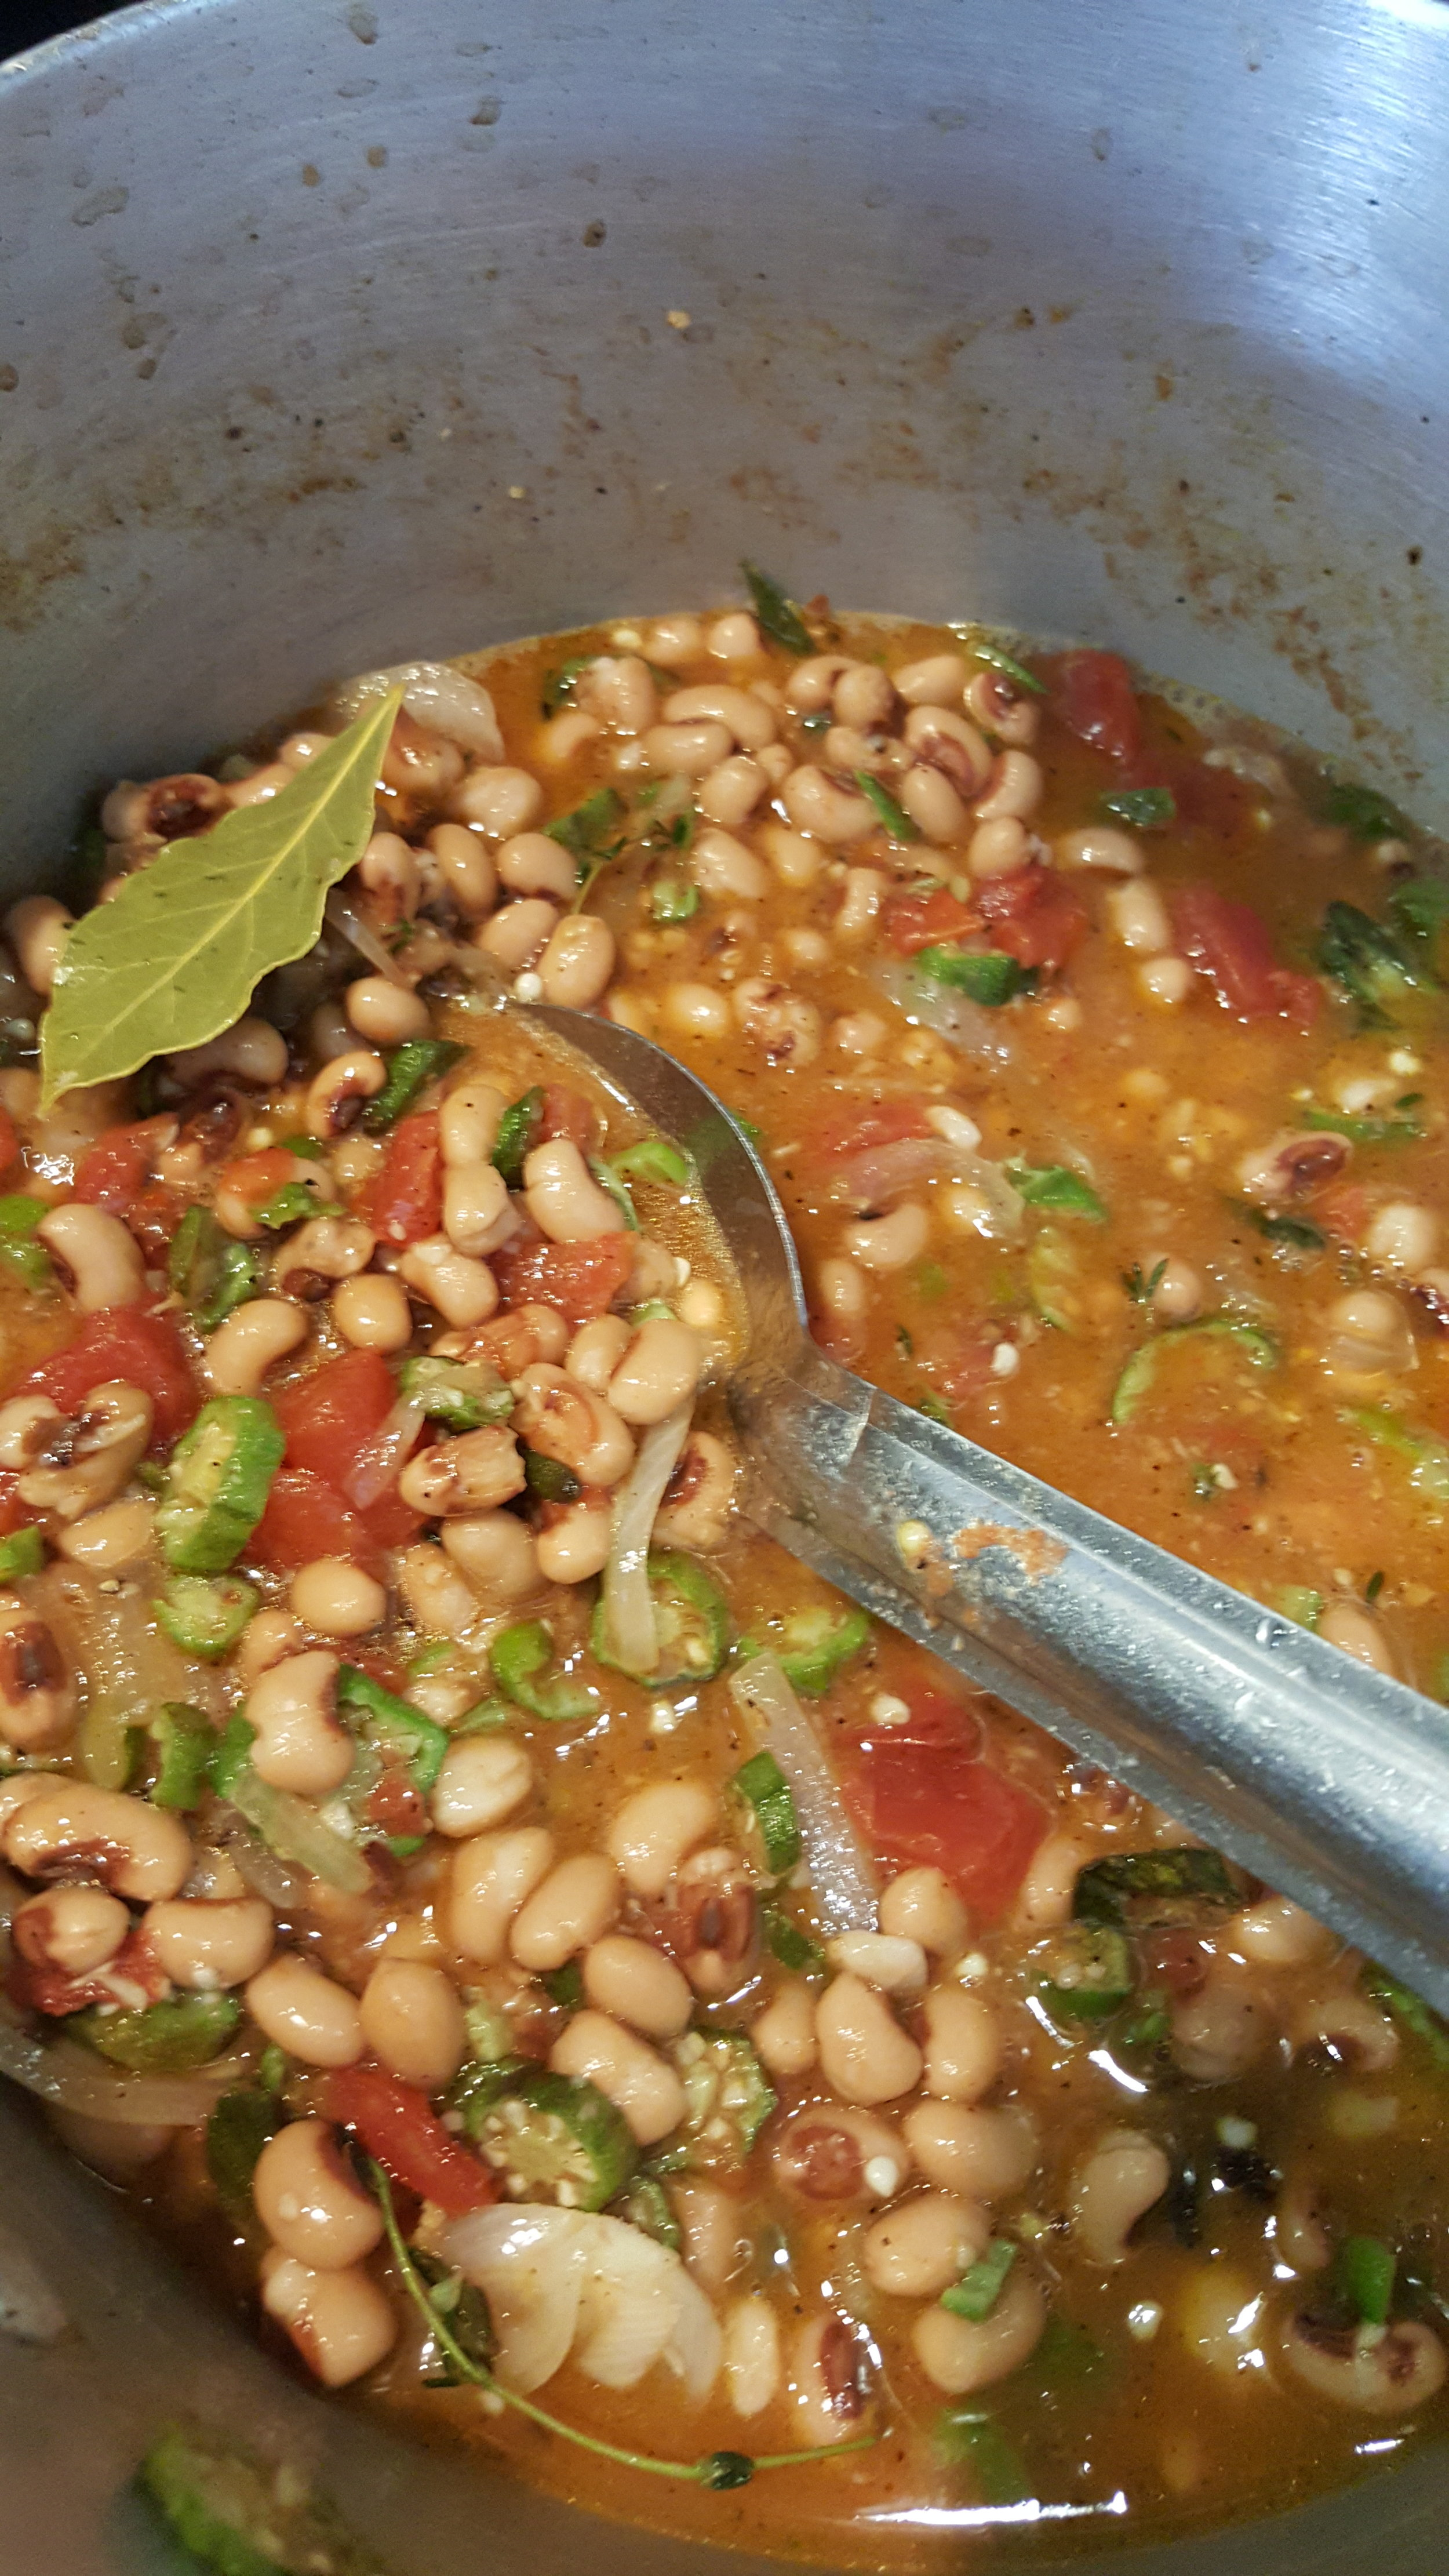 Black-eyed peas are some of the most flavorful ingredients in the world.